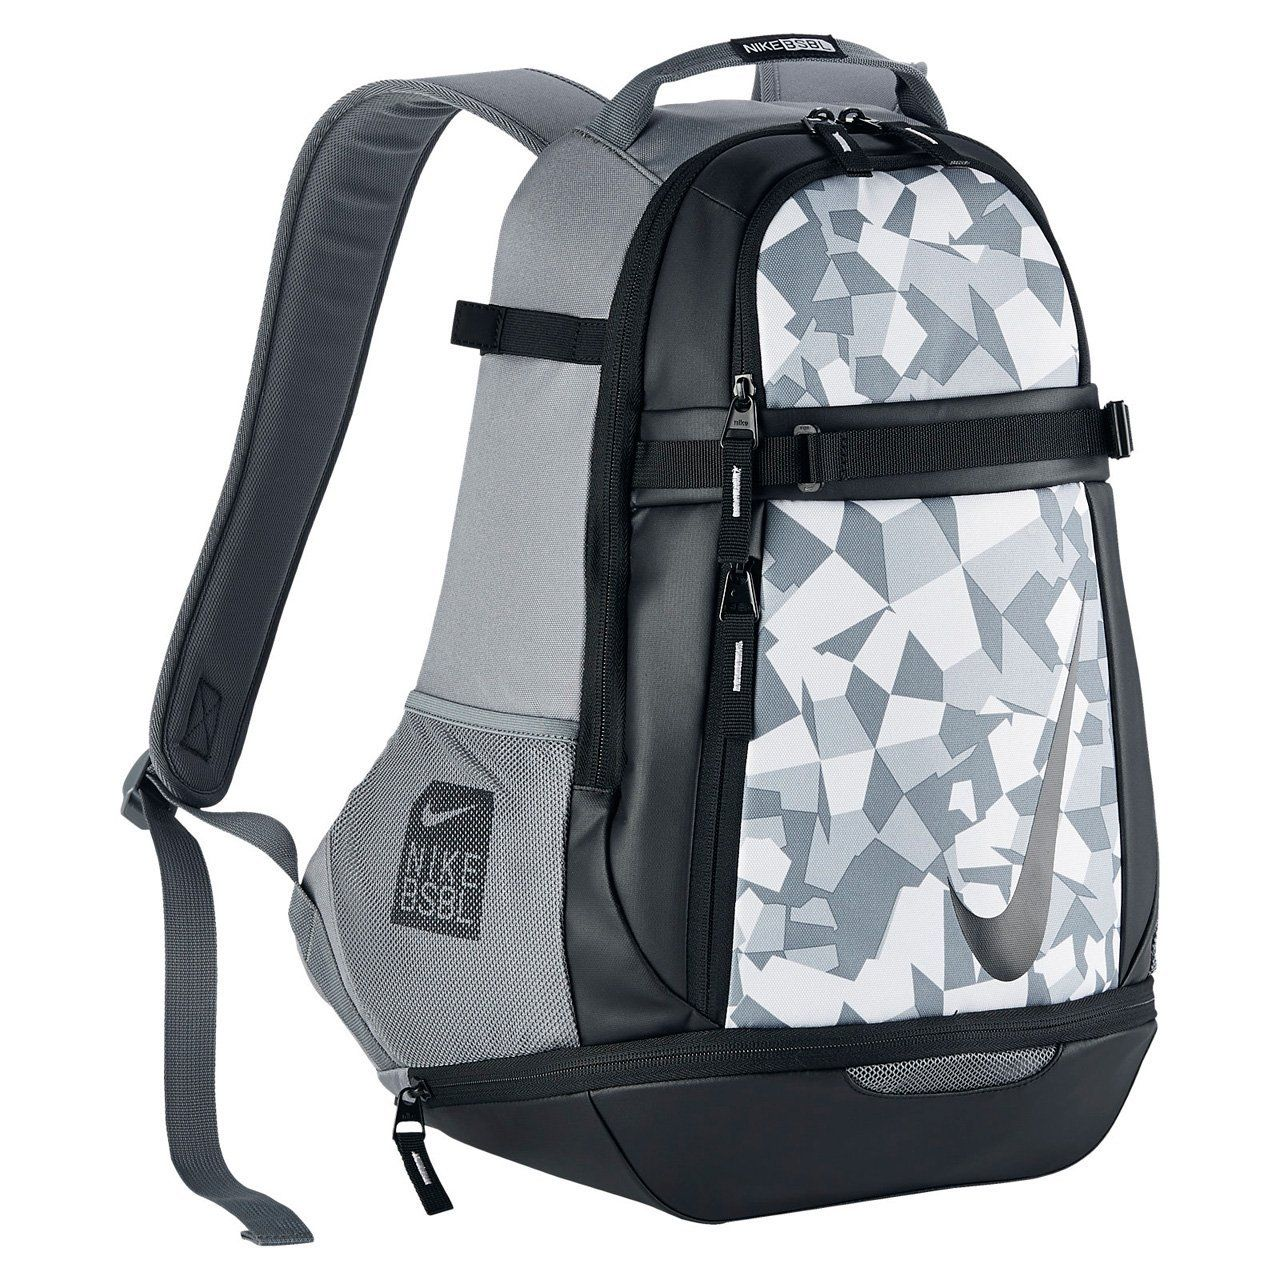 Nike Vapor Select 2.0 Graphic Backpack Grey Black BA5357-064 Sale 50%. Now  only  47.95 5c01eb655394d